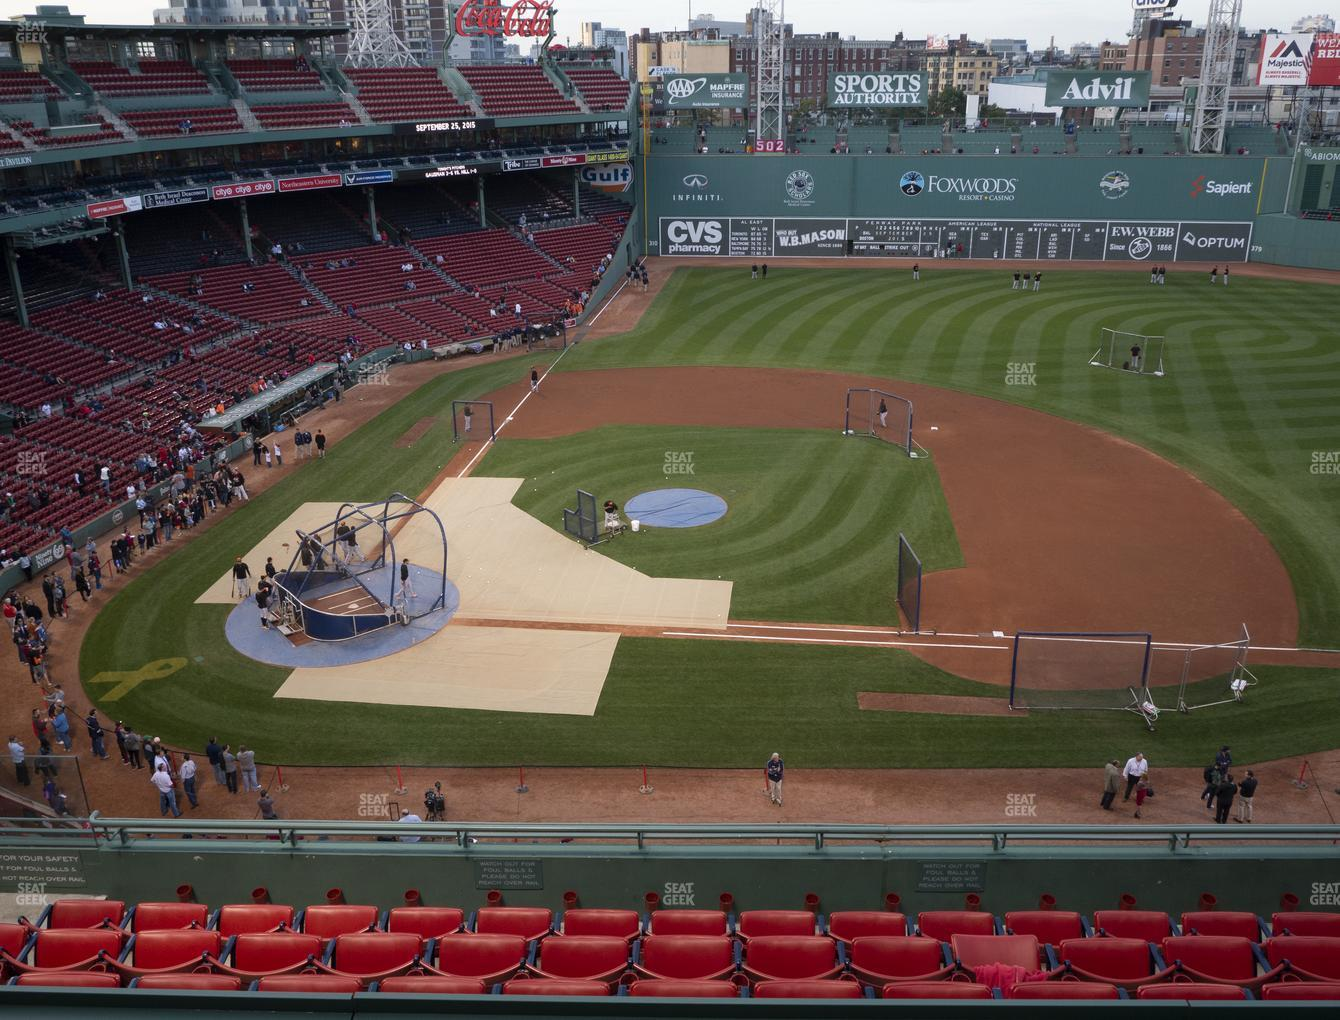 Boston Red Sox at Fenway Park Pavilion Box 5 View